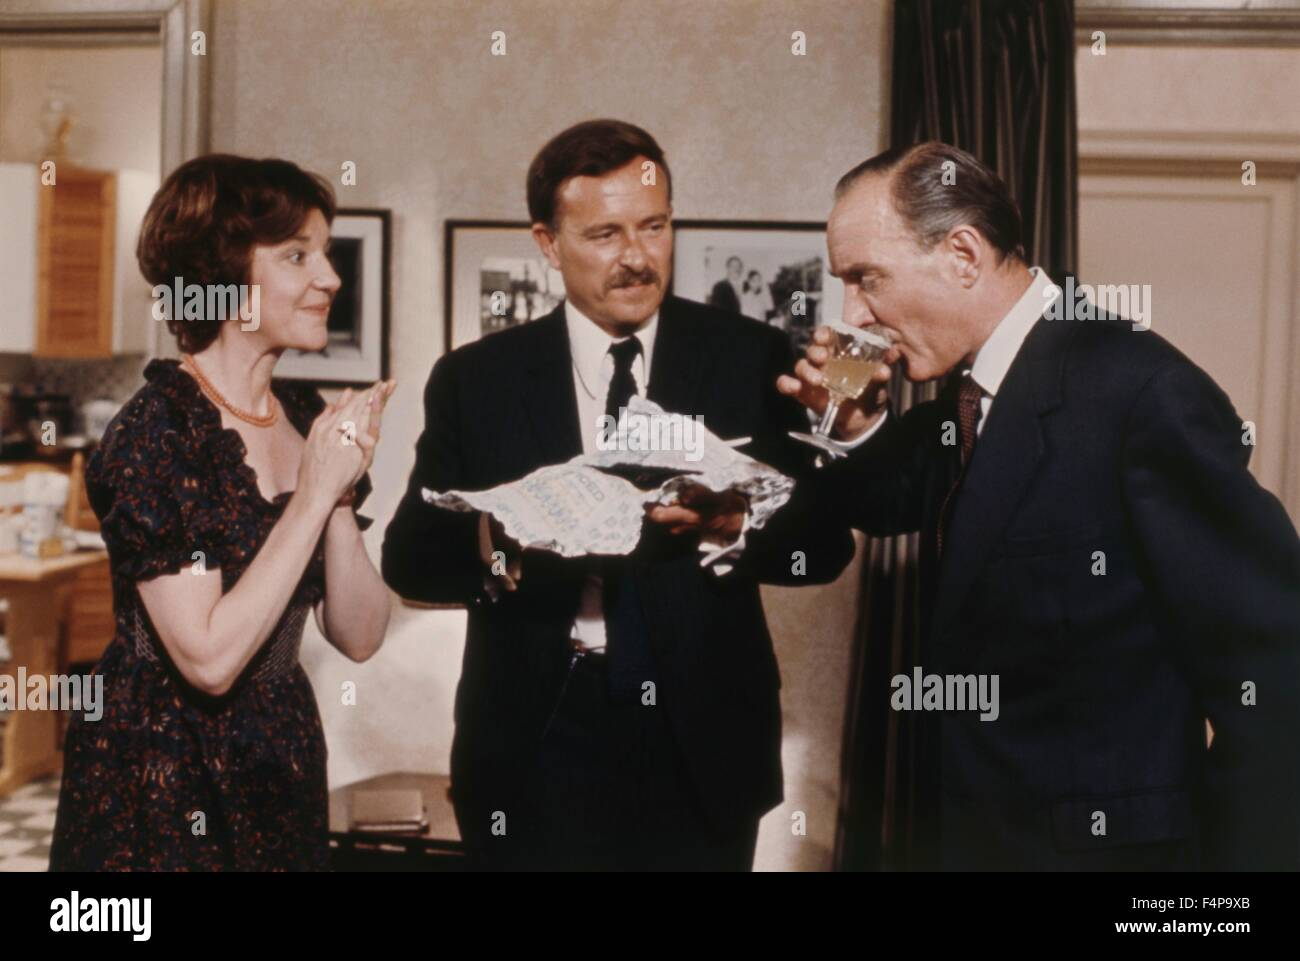 Anna Massey, Jon Finch, Alex Mc Cowen / Frenzy 1972 directed by Alfred Hitchcock - Stock Image